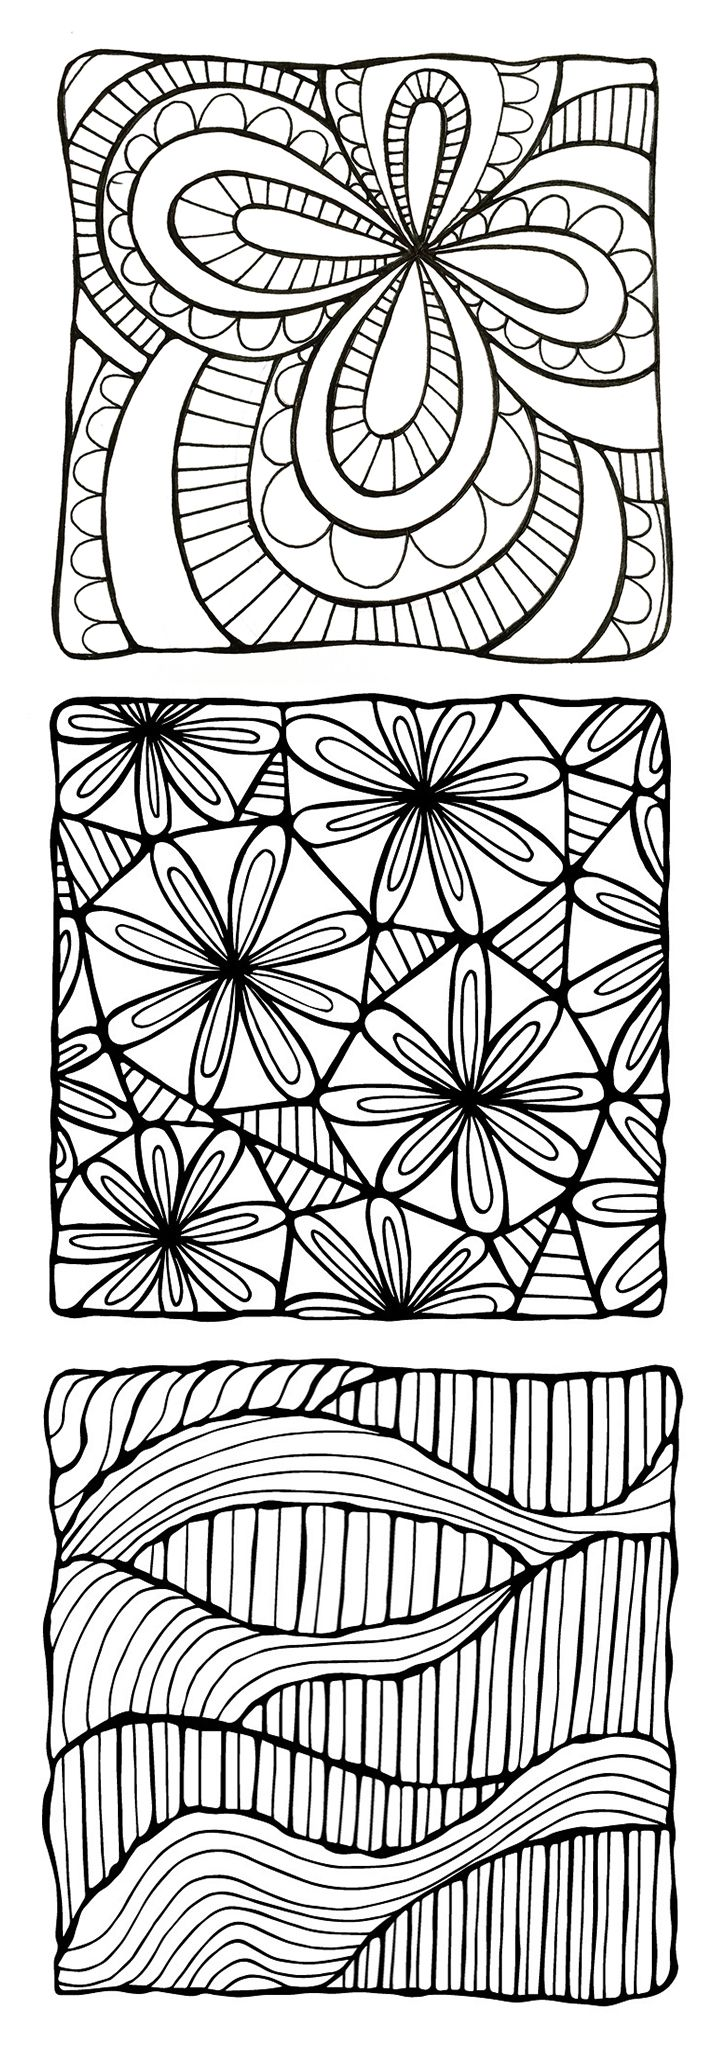 99 best coloring images on pinterest coloring